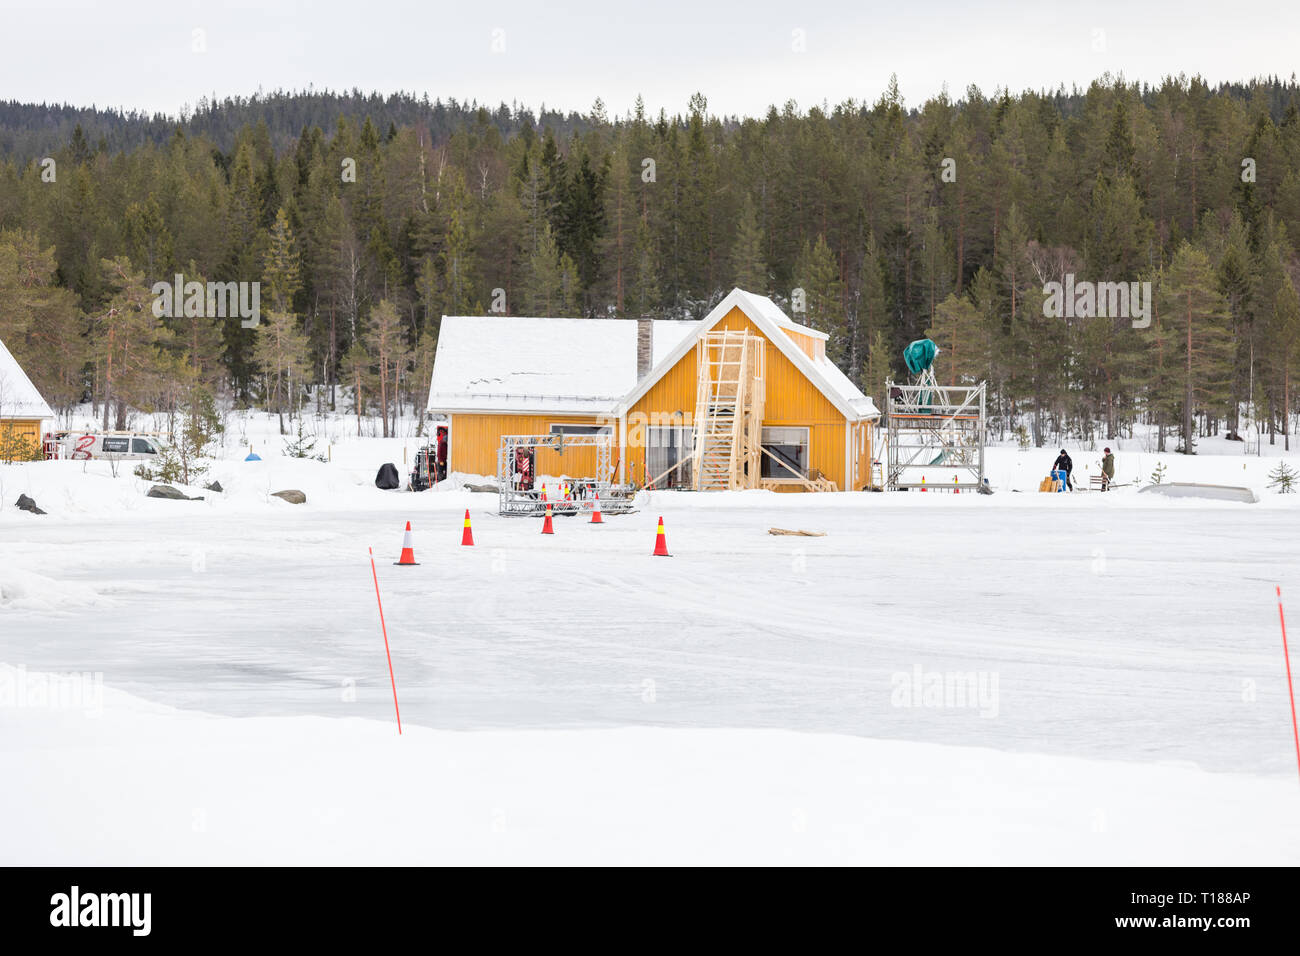 hakadal-norway-24th-march-2019-final-preparations-taking-place-ready-to-start-filming-the-25th-james-bond-film-in-the-forest-north-of-oslo-norway-credit-paul-smithalamy-live-news-T188AP.jpg